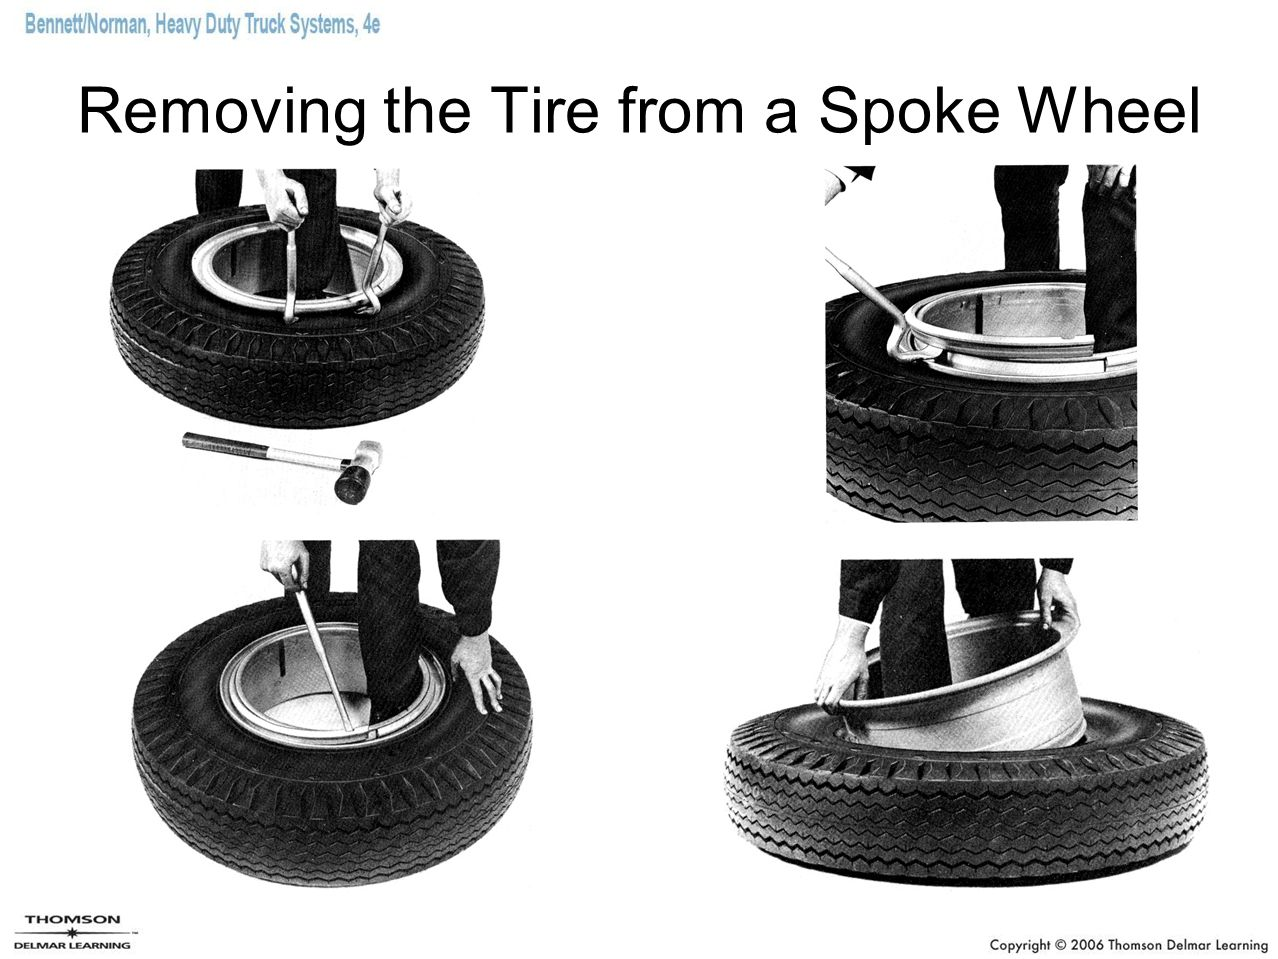 Removing the Tire from a Spoke Wheel